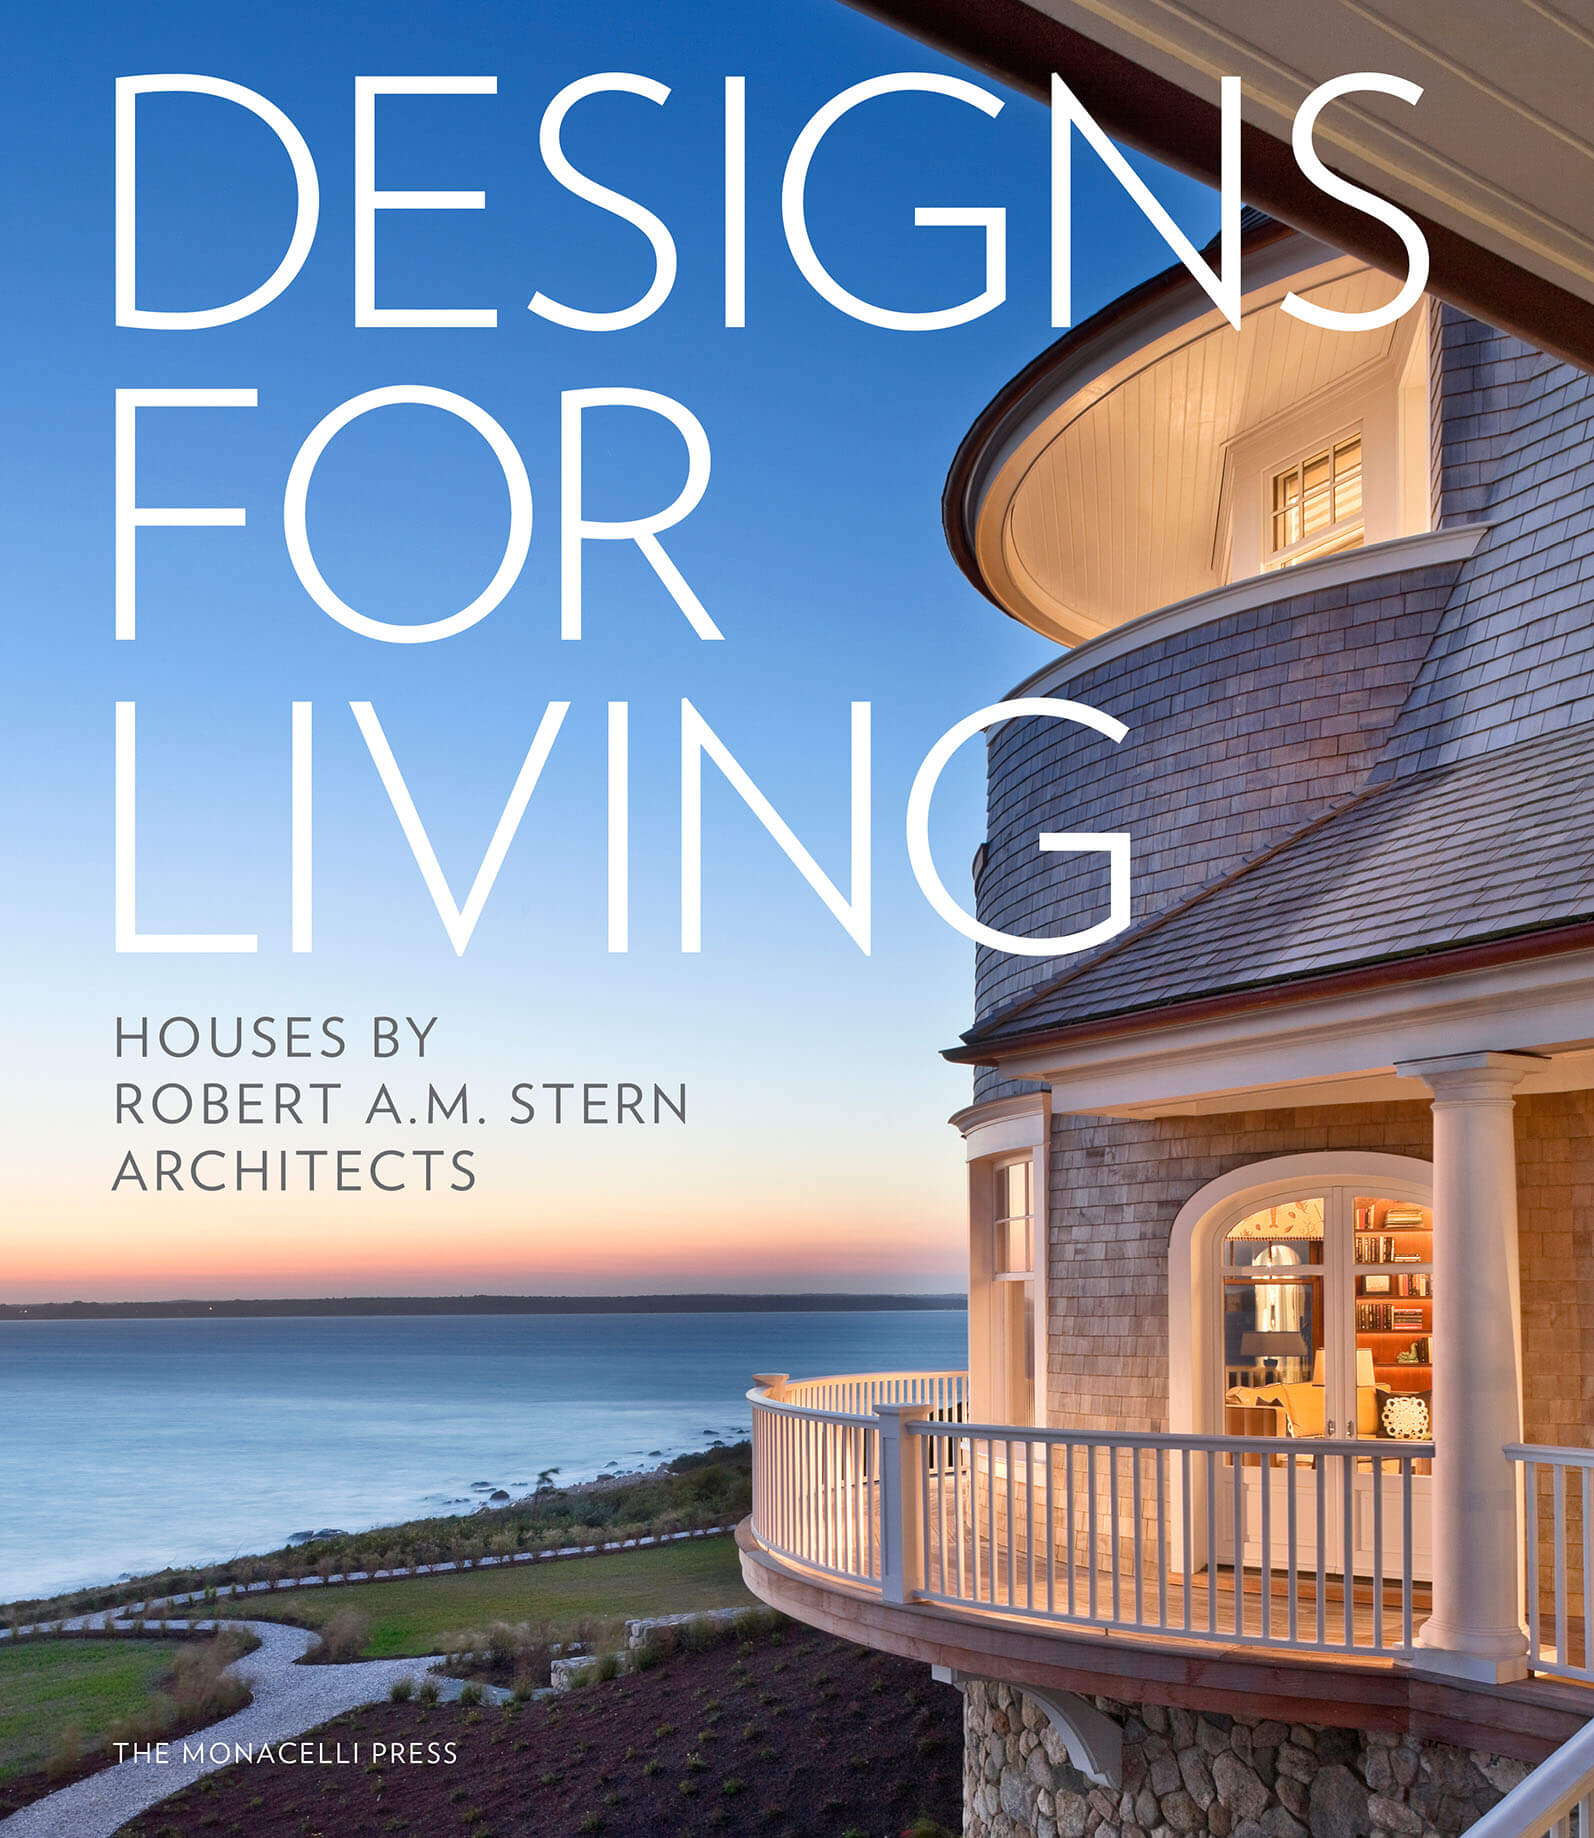 Designs for Living: Houses by Robert A.M. Stern Architects